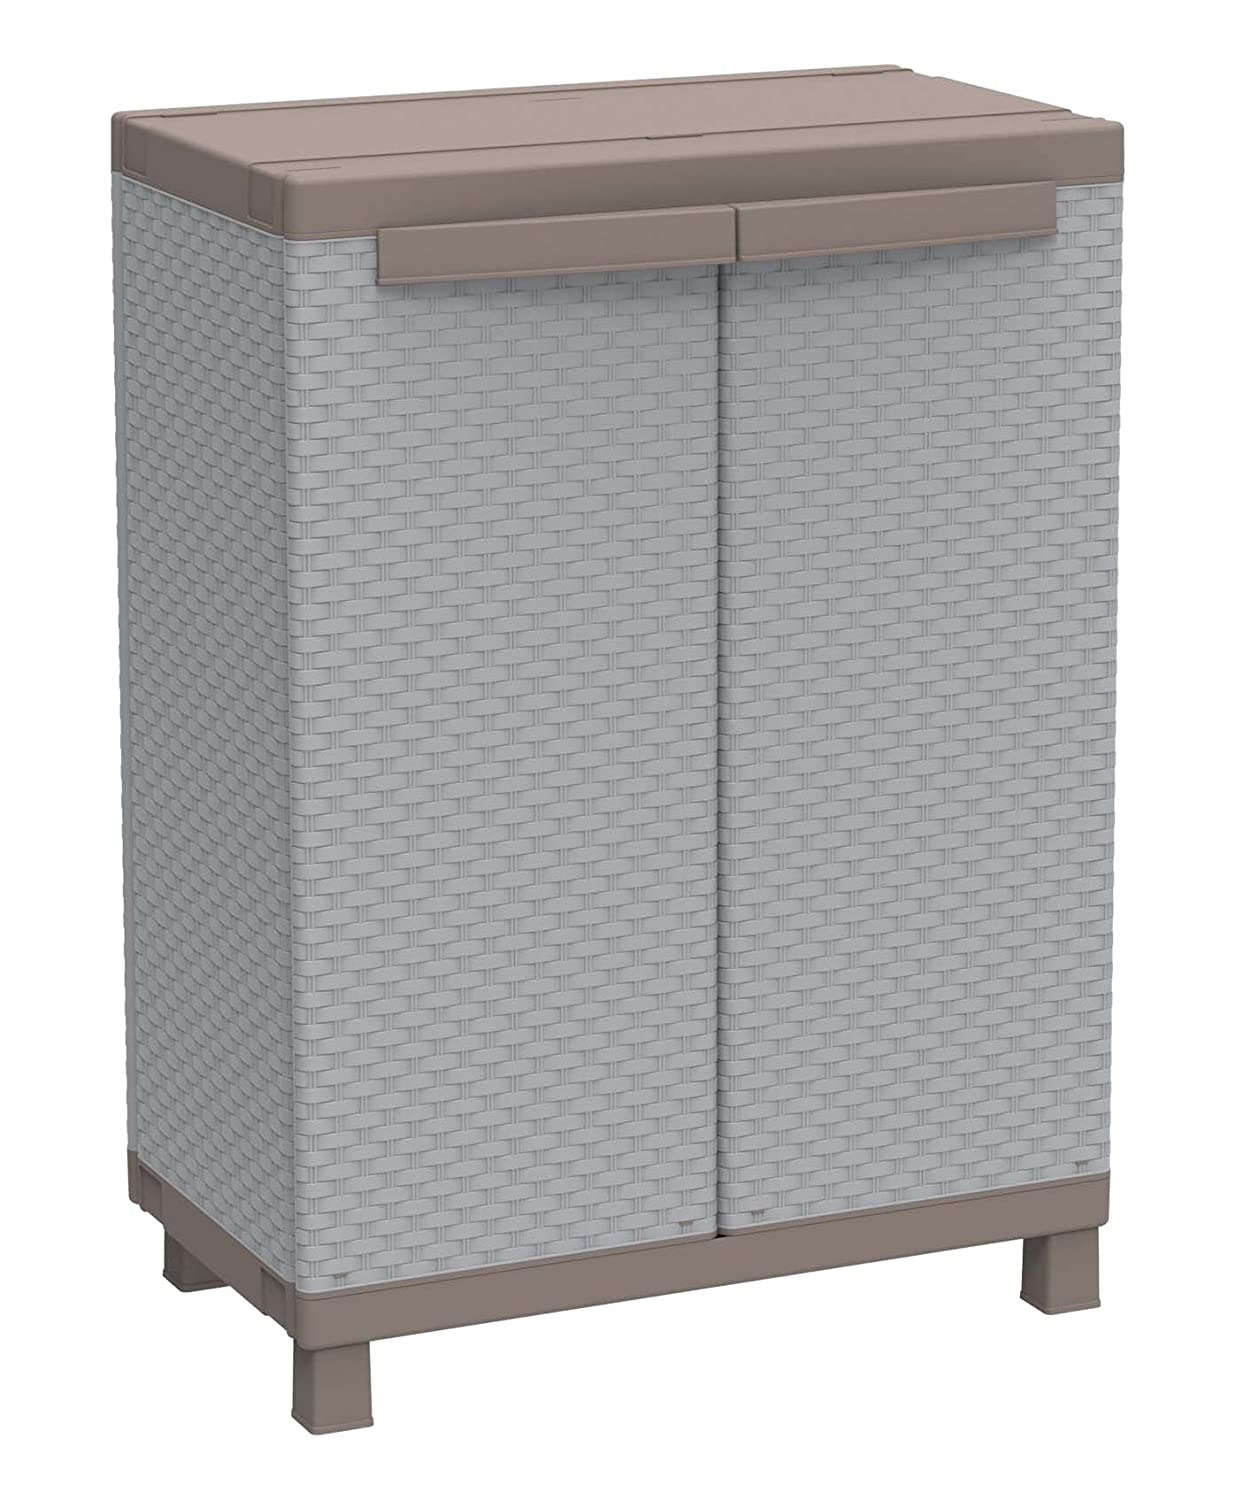 Low Cabinet with Doors Beautiful Terry C Rattan 680 Low Plastic Cabinet with Doors 68 X 39 X 91 5 Cm Grey Taupe